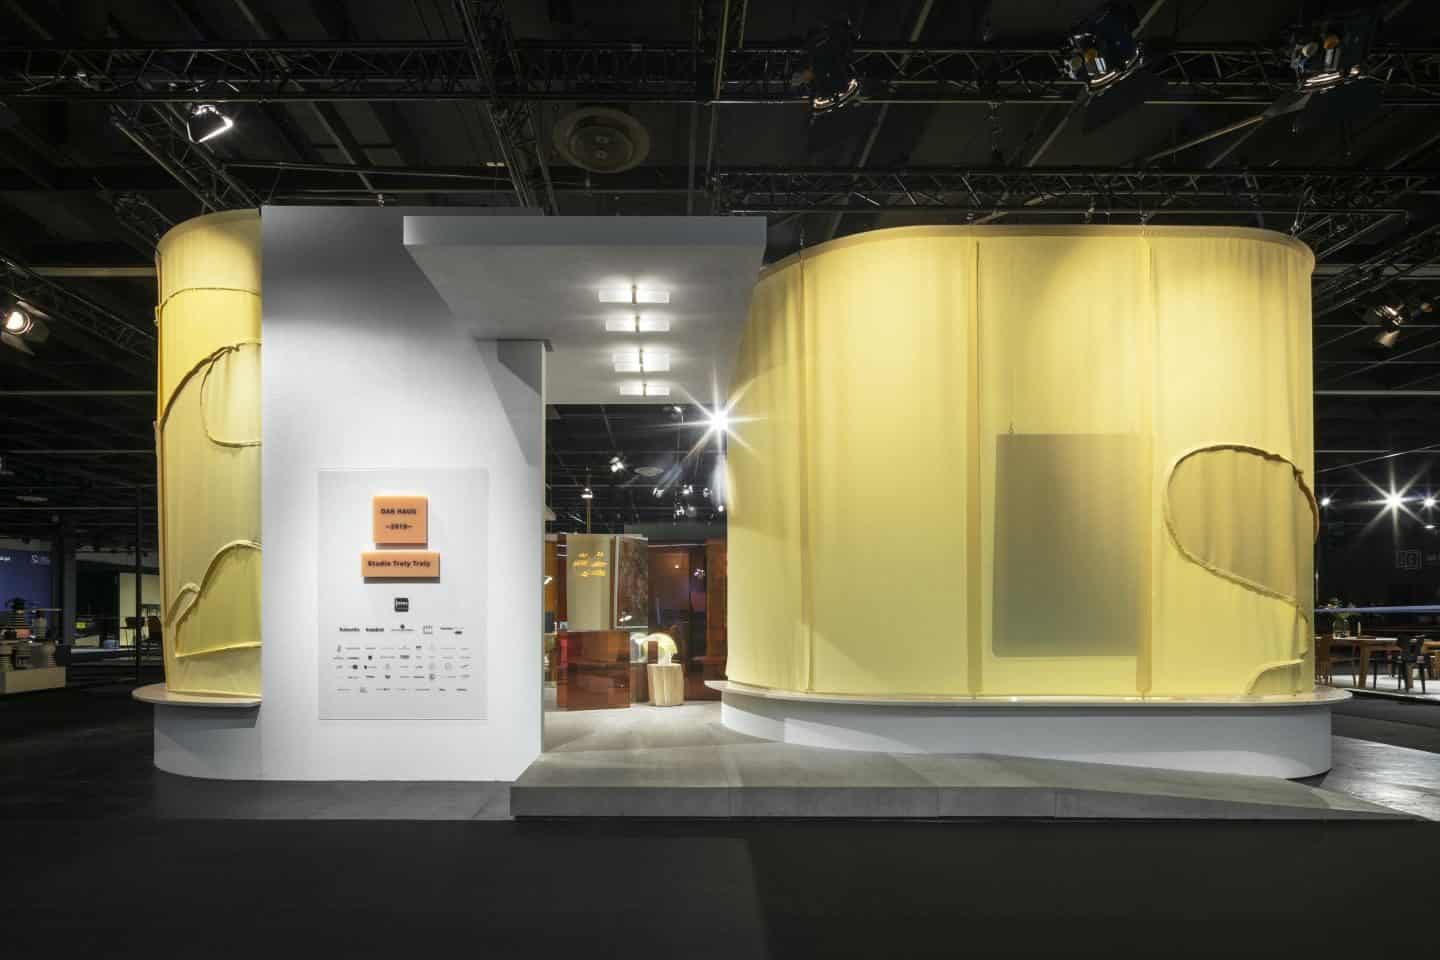 Imm Cologne Das Haus by Studio Truly Truly explored a new approach to open domestic living culture. The rooms flow into one another and are dictated by atmospheres rather than the function of the room.